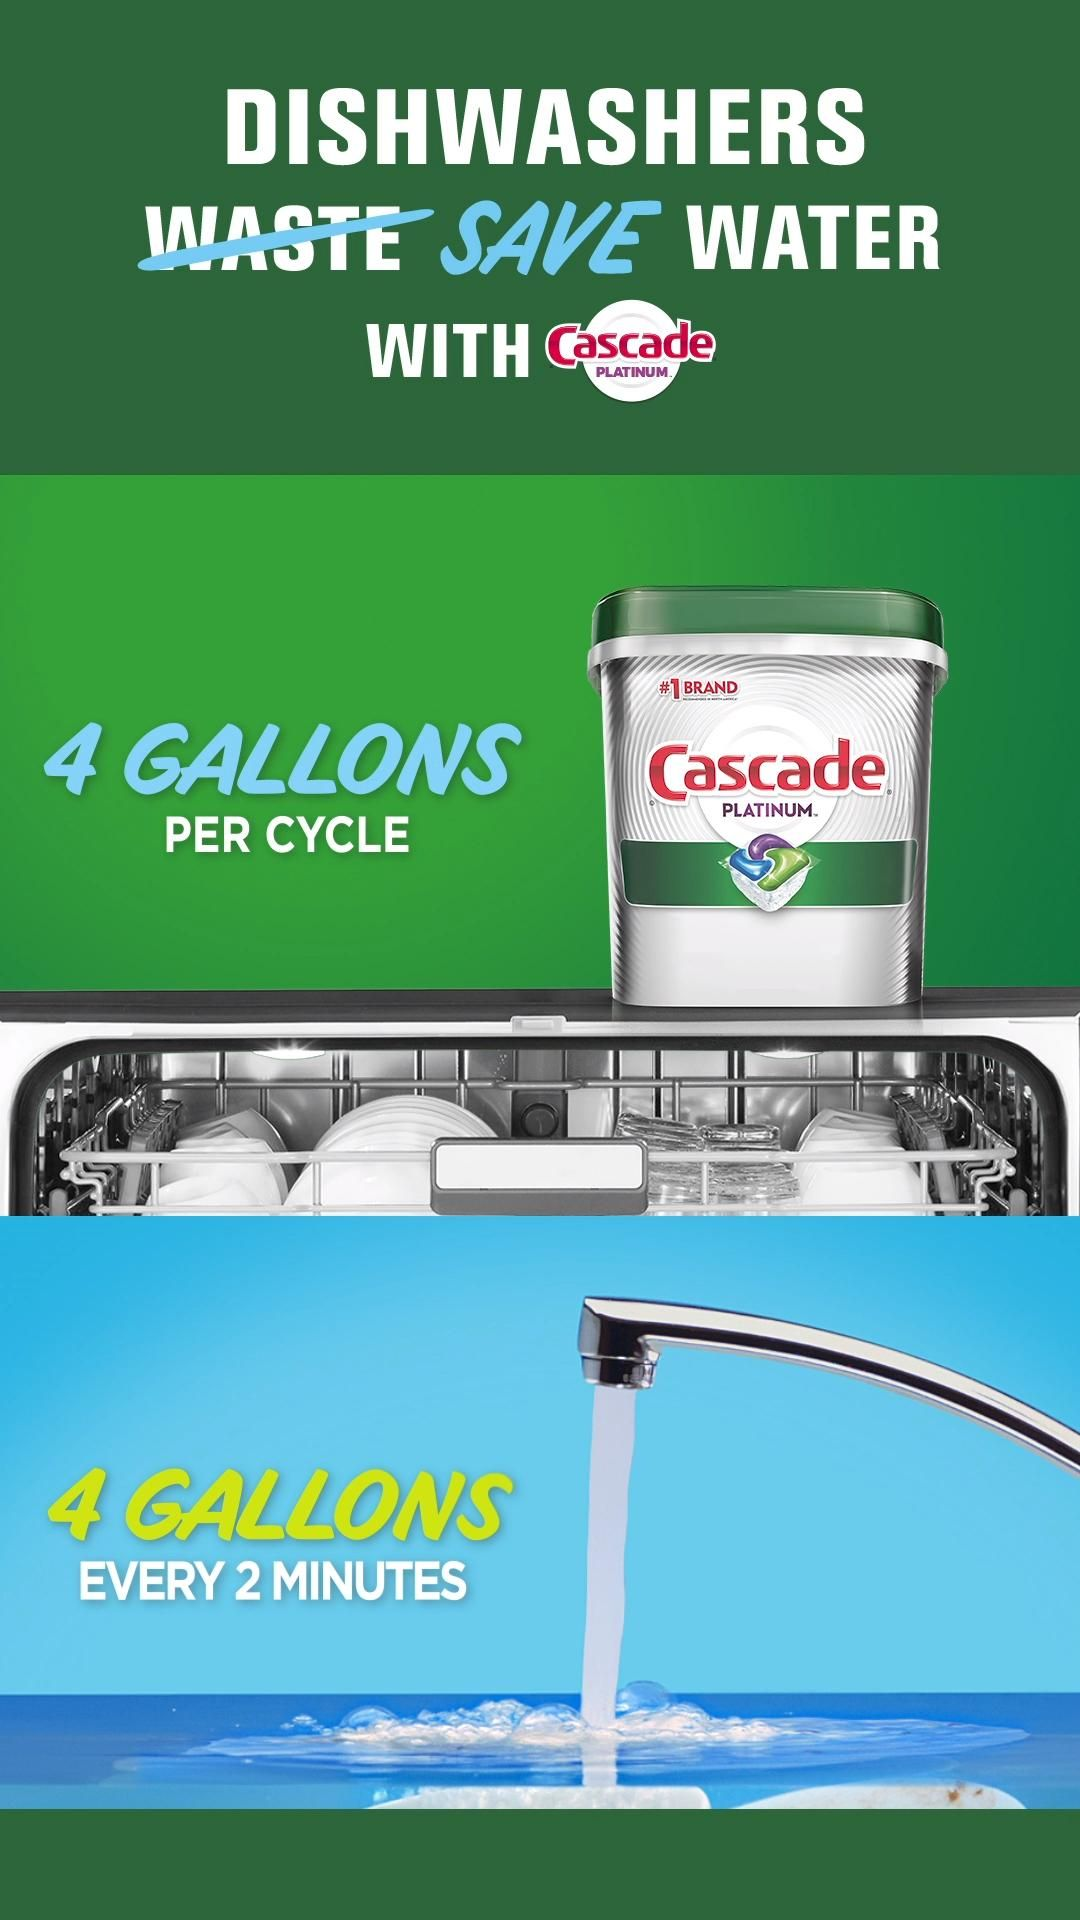 Do It Every Night With Cascade to Save Water